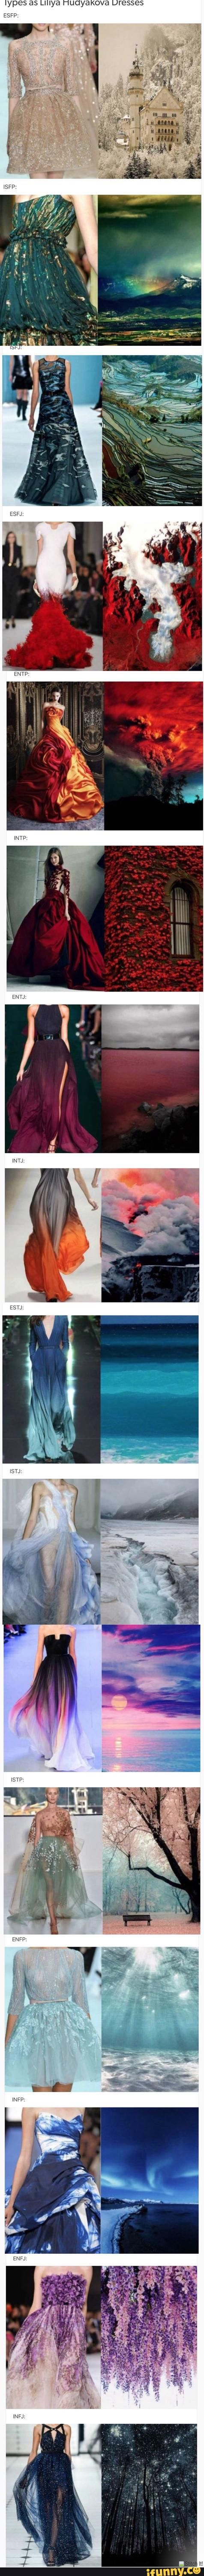 tumblr, mbti// I'm very particular when it comes to dresses but I actually really like my type's dress - INFJ